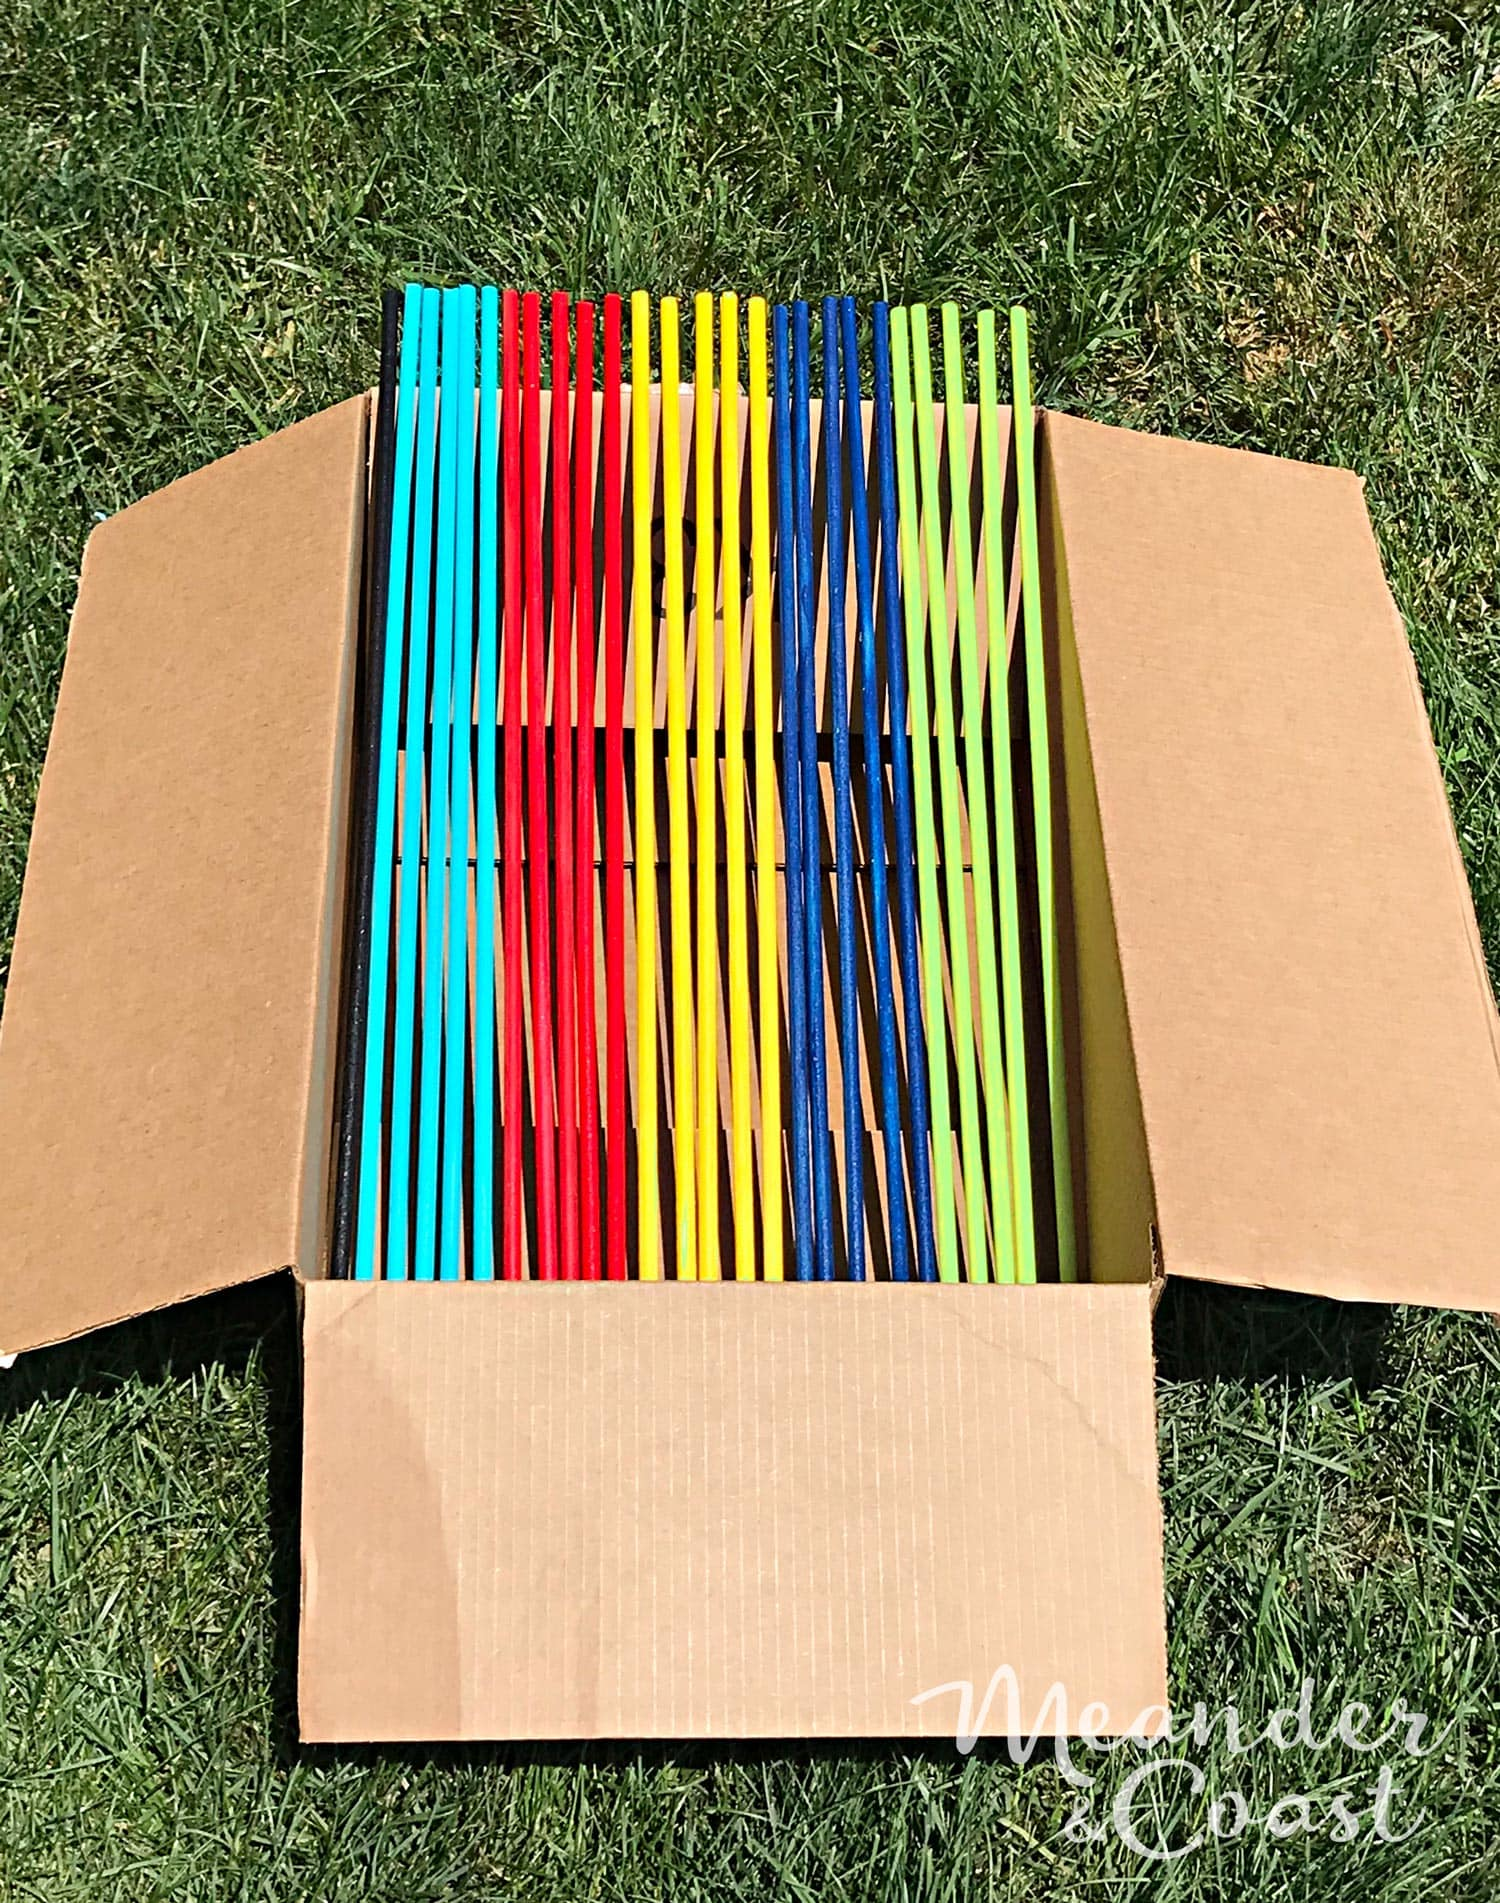 Make giant pick up sticks with paint and wooden dowels. Tutorial from MeanderAndCoast.com. #pickupsticks #giantgames #yardgames #giantoutdoorgame #campinggames #outdooractivities